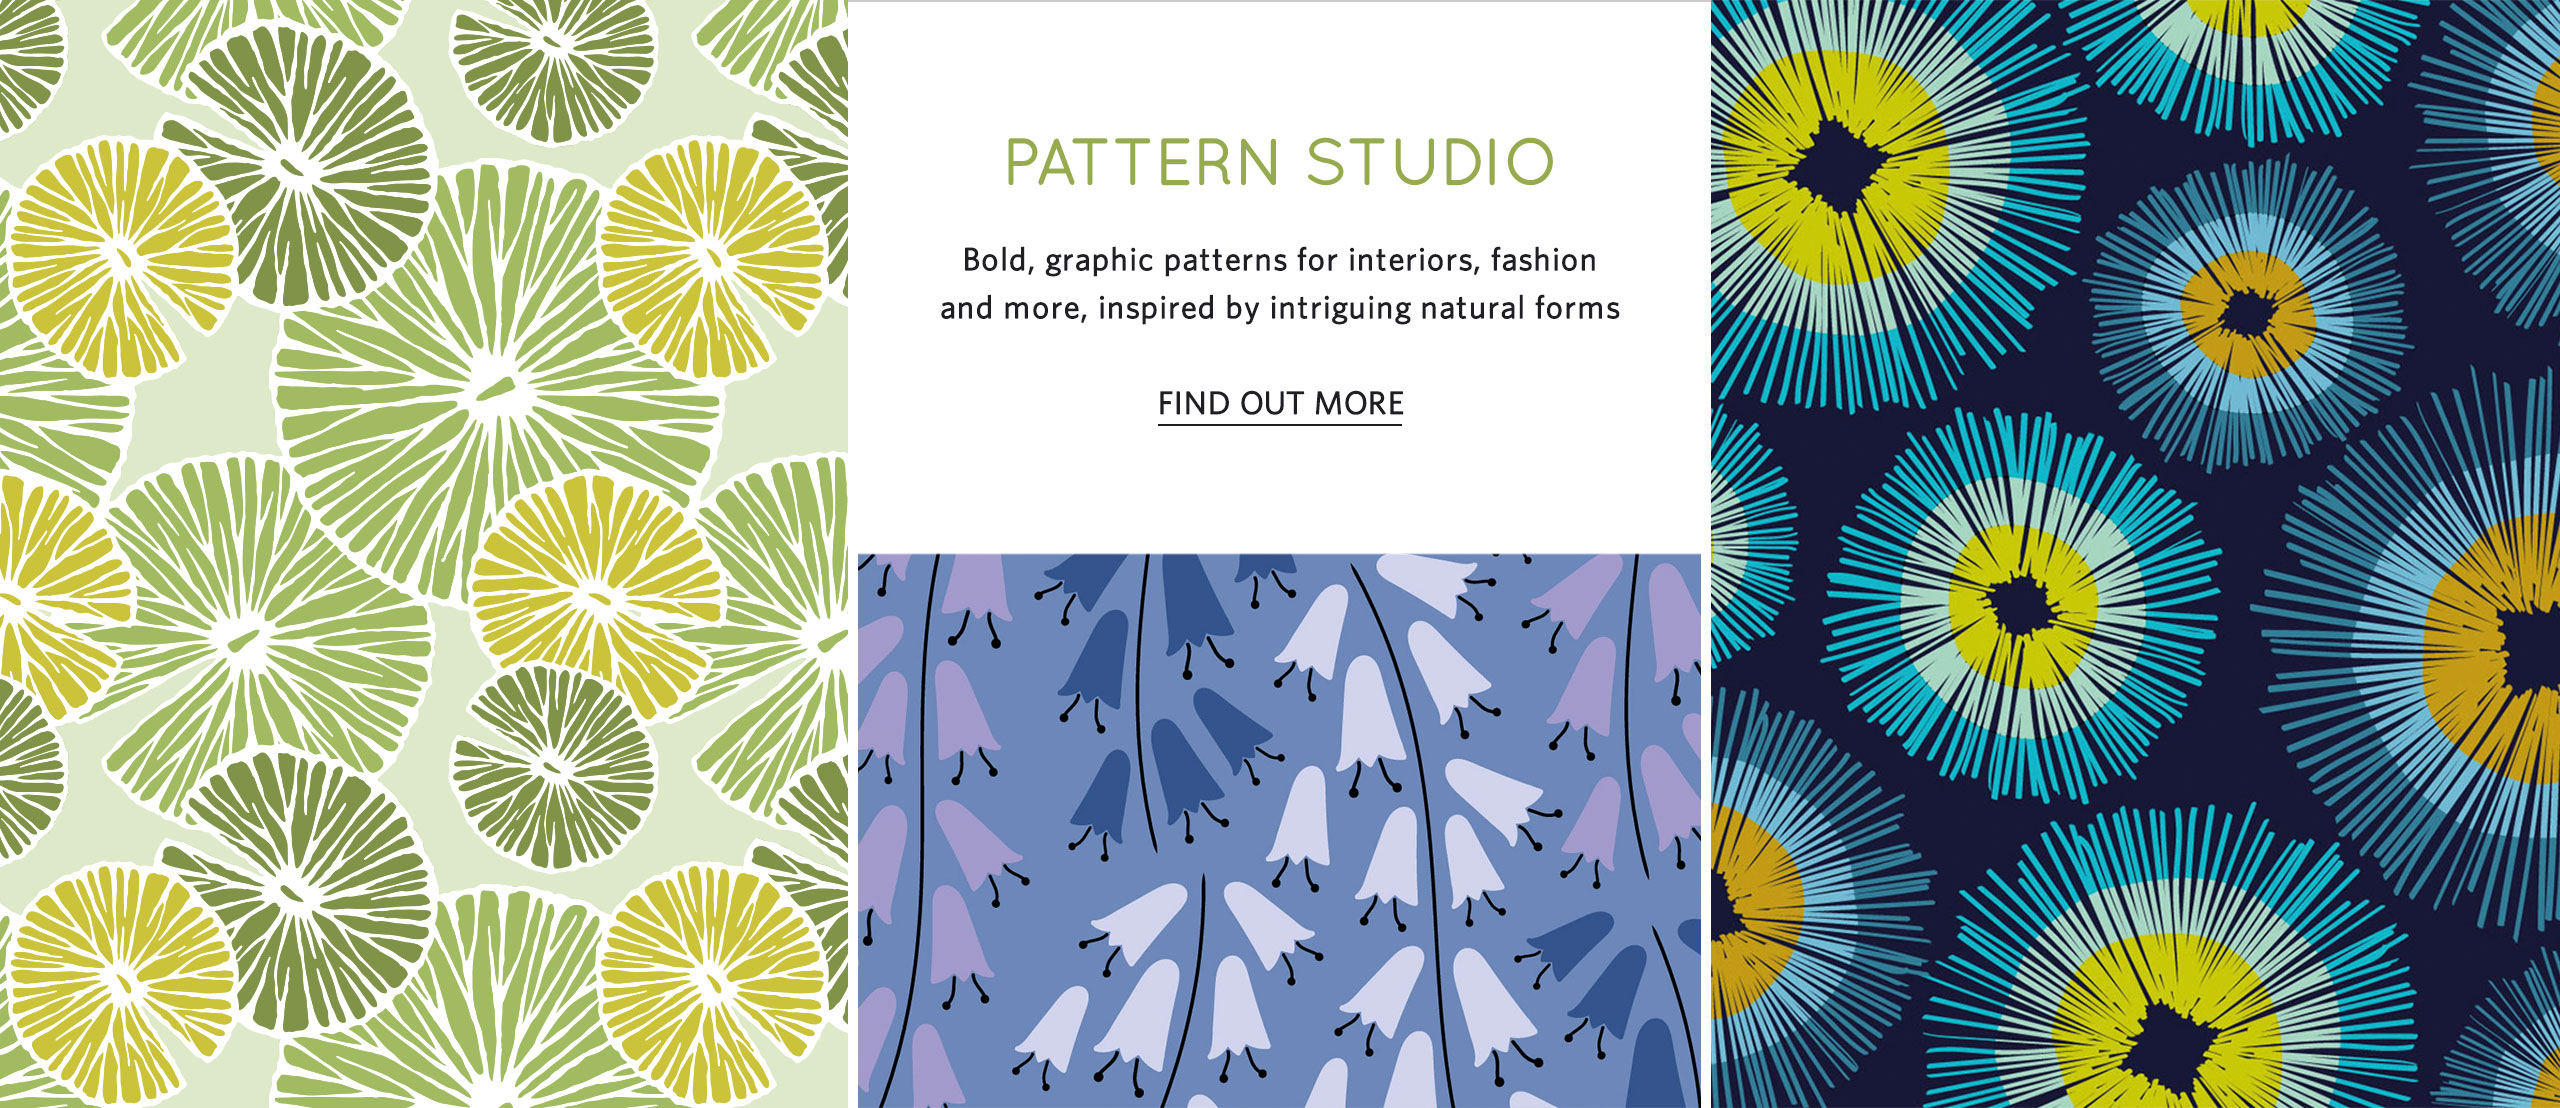 Pattern design commissions - bold colourful graphic patterns from Studio Element